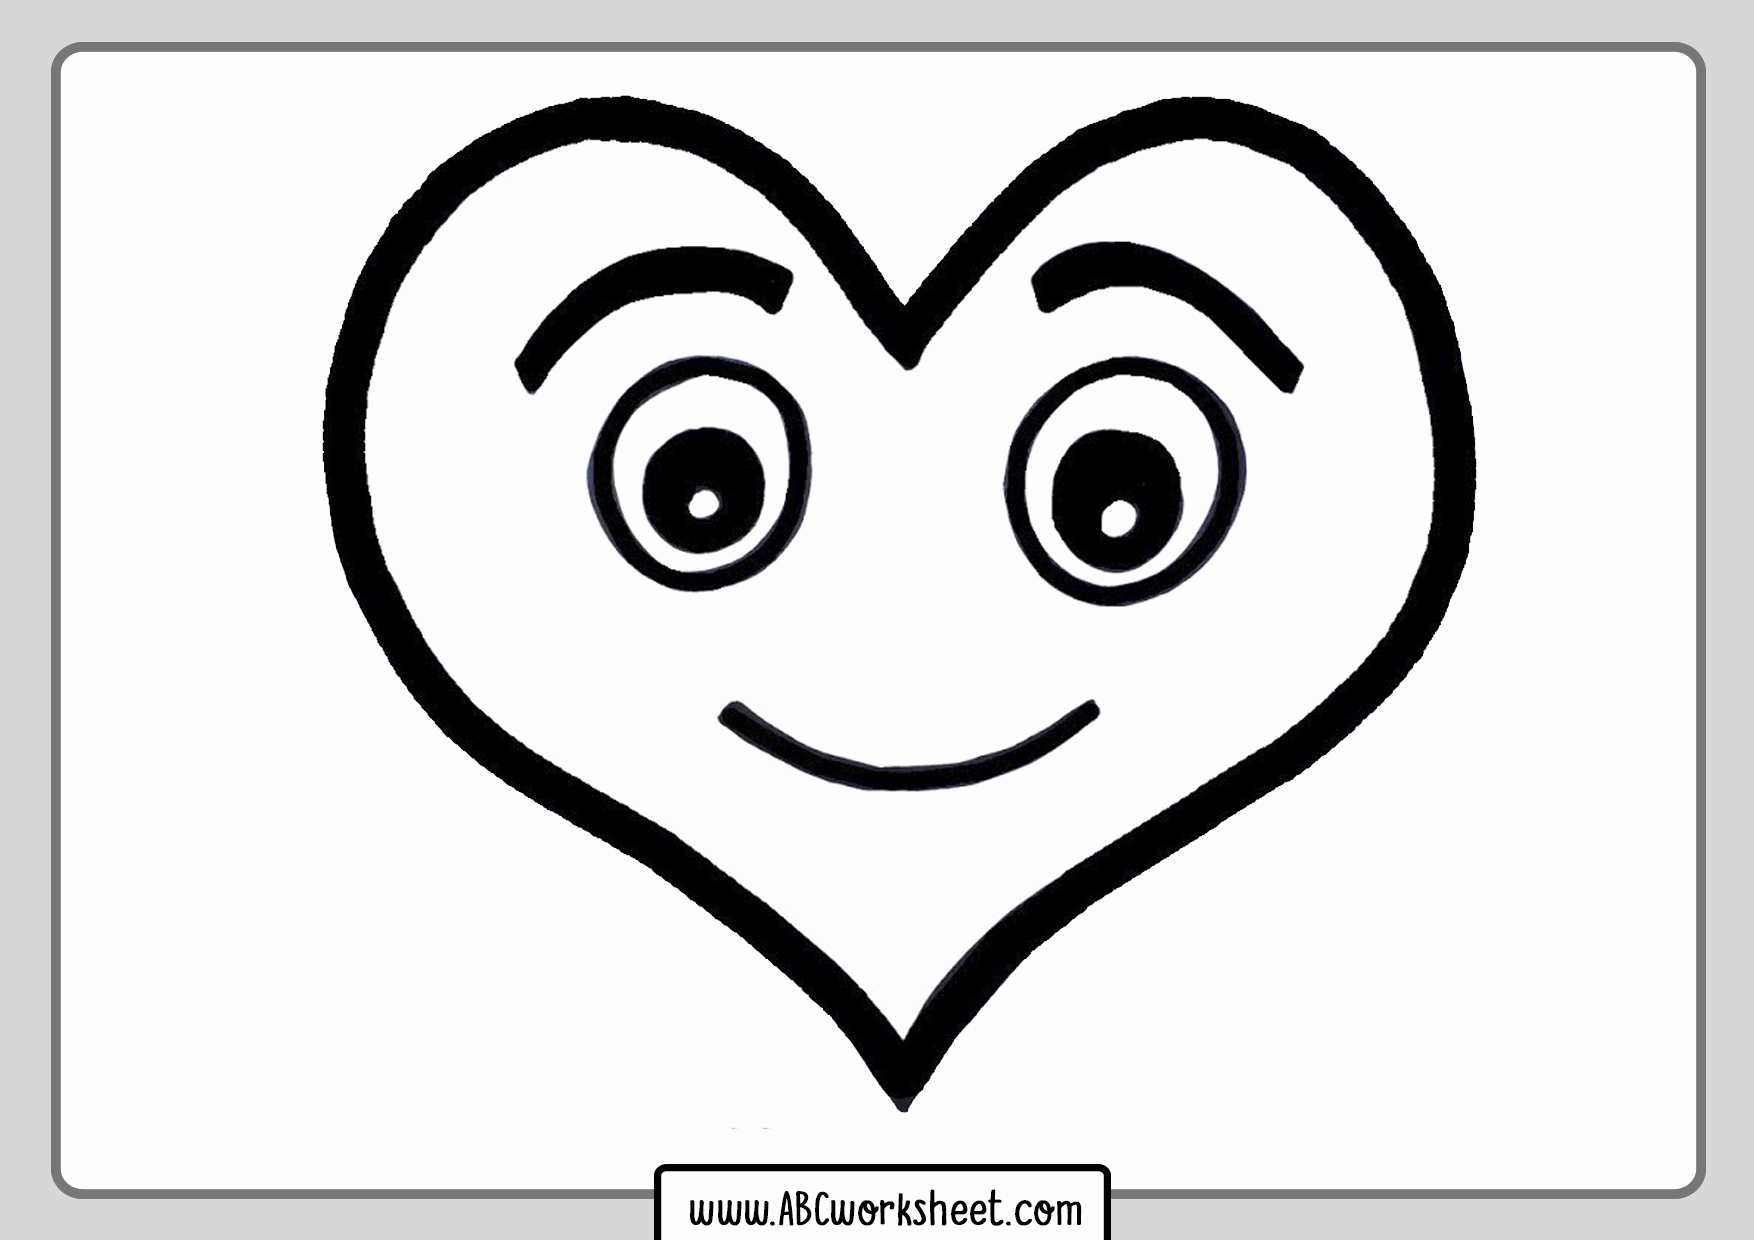 Heart Coloring Worksheet Lovely Printable Heart Coloring Pages